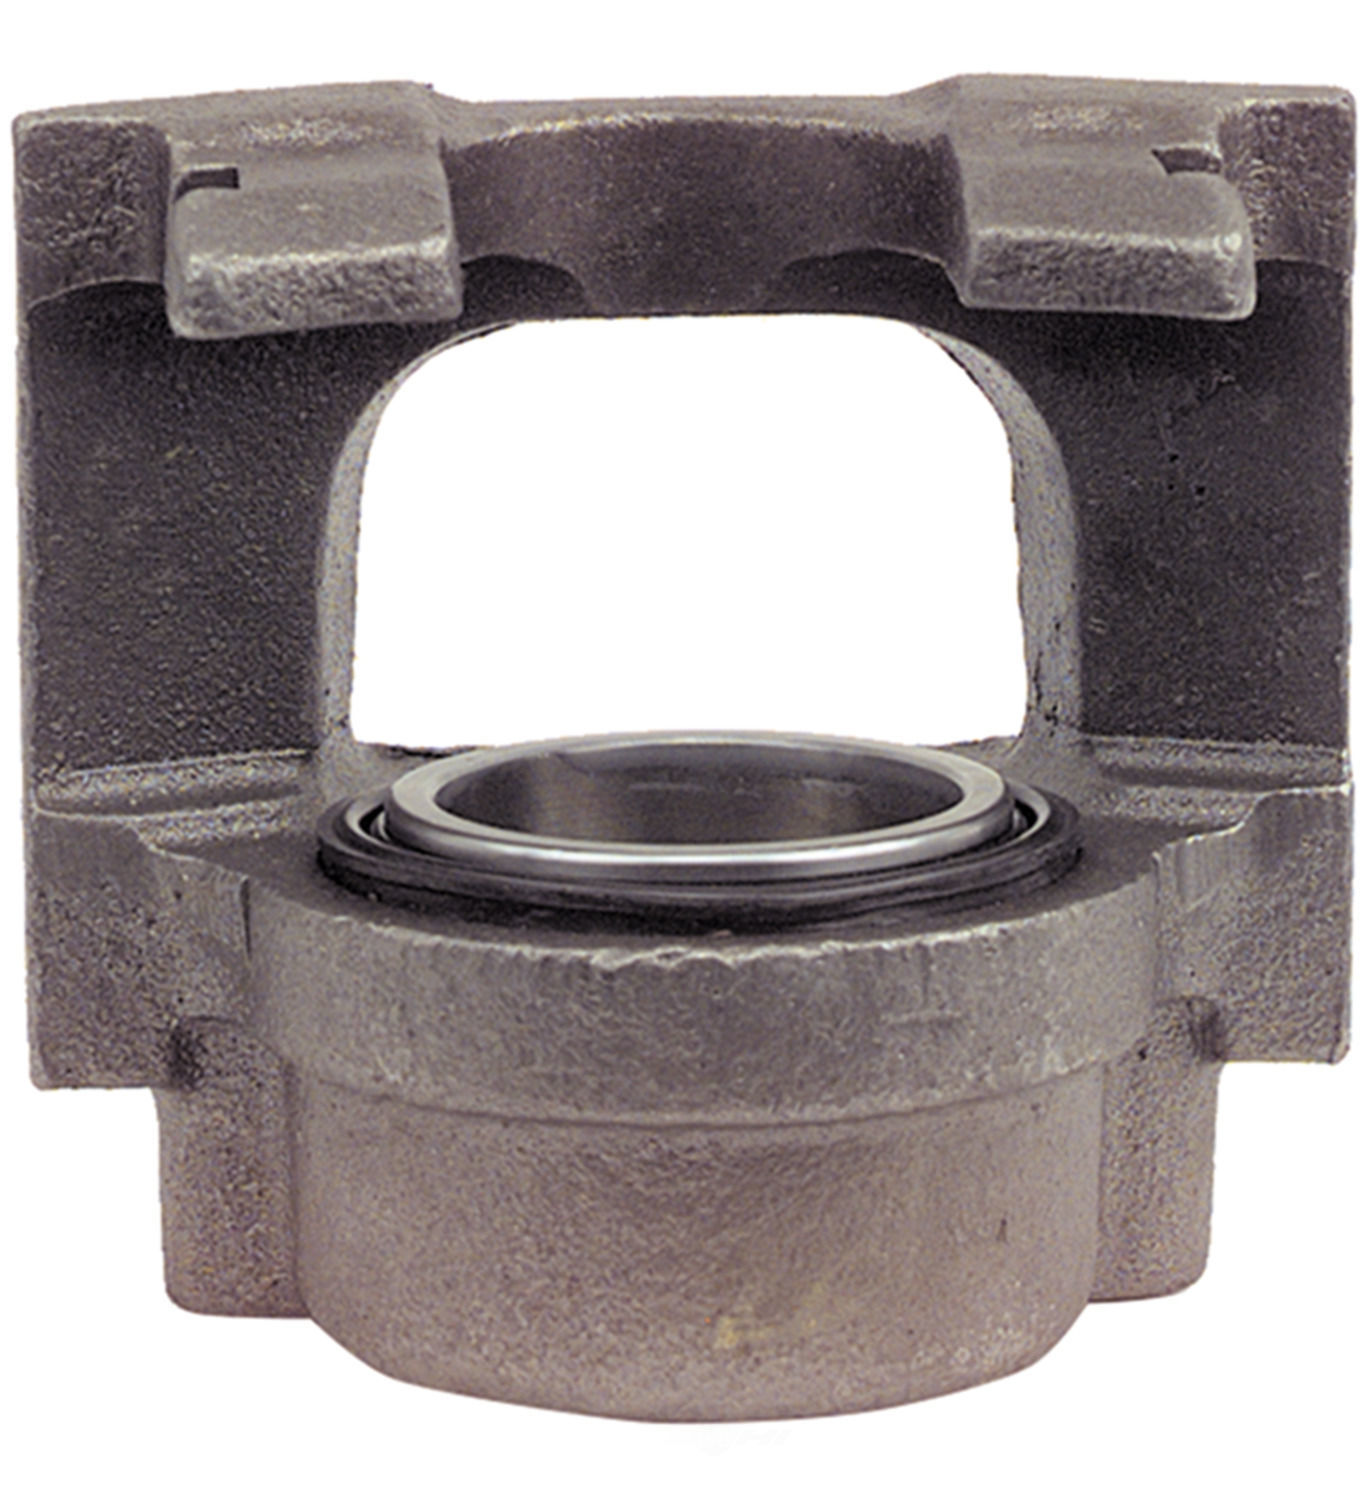 CARDONE REMAN - Unloaded Caliper - A1C 18-4246S